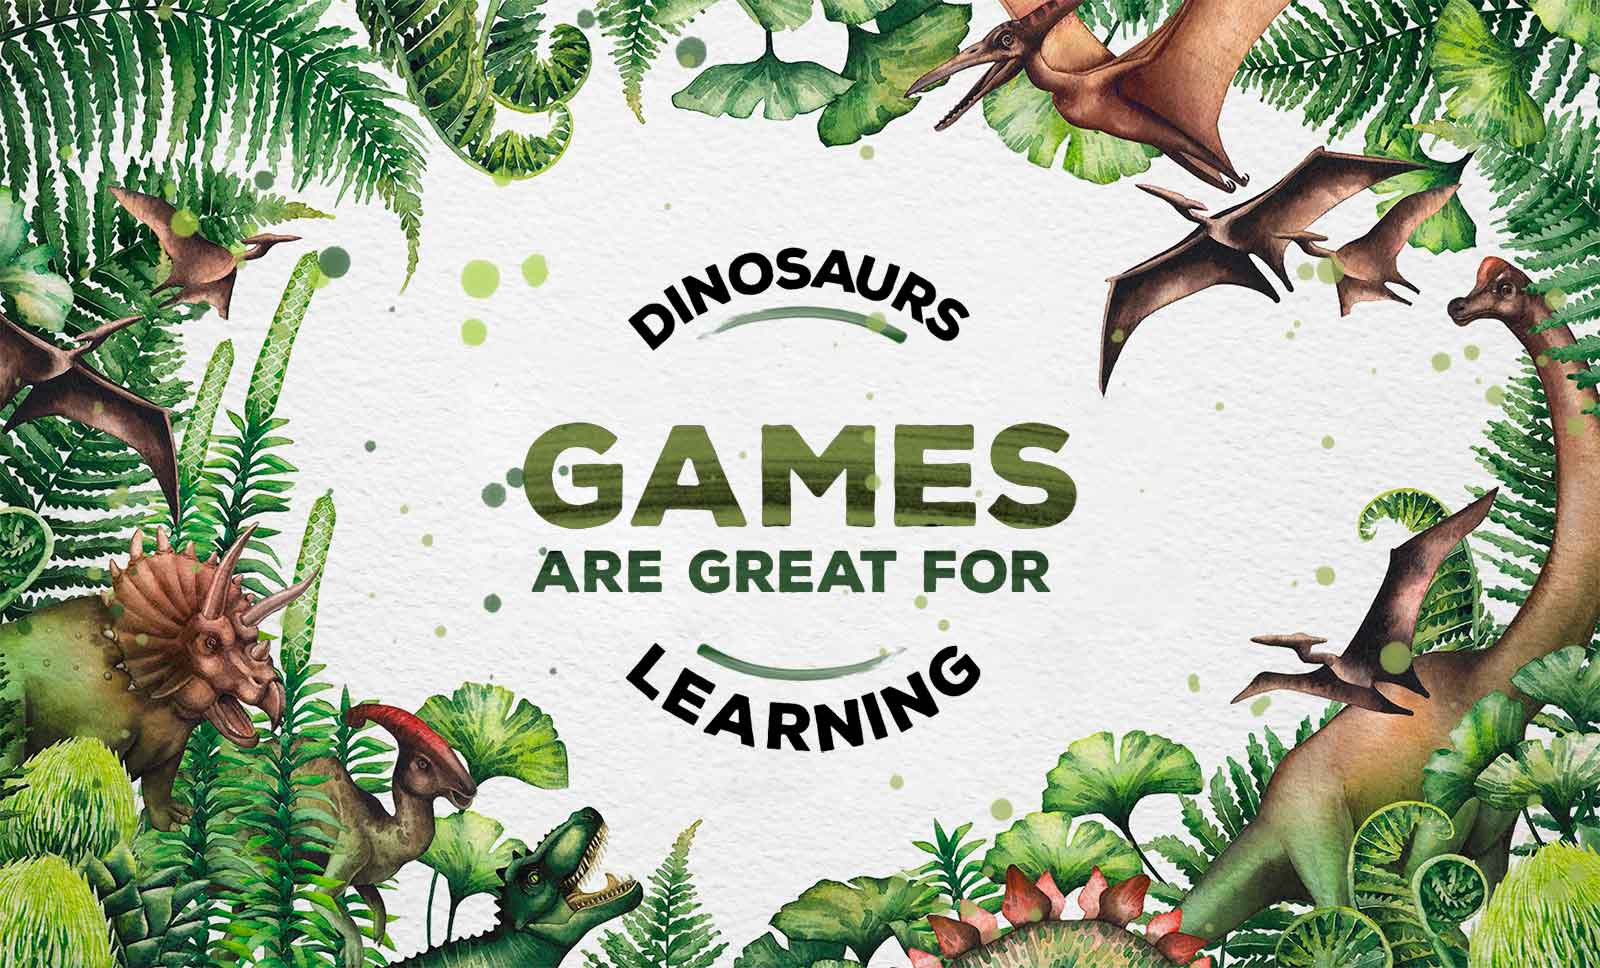 Why dinosaur games are great for learning